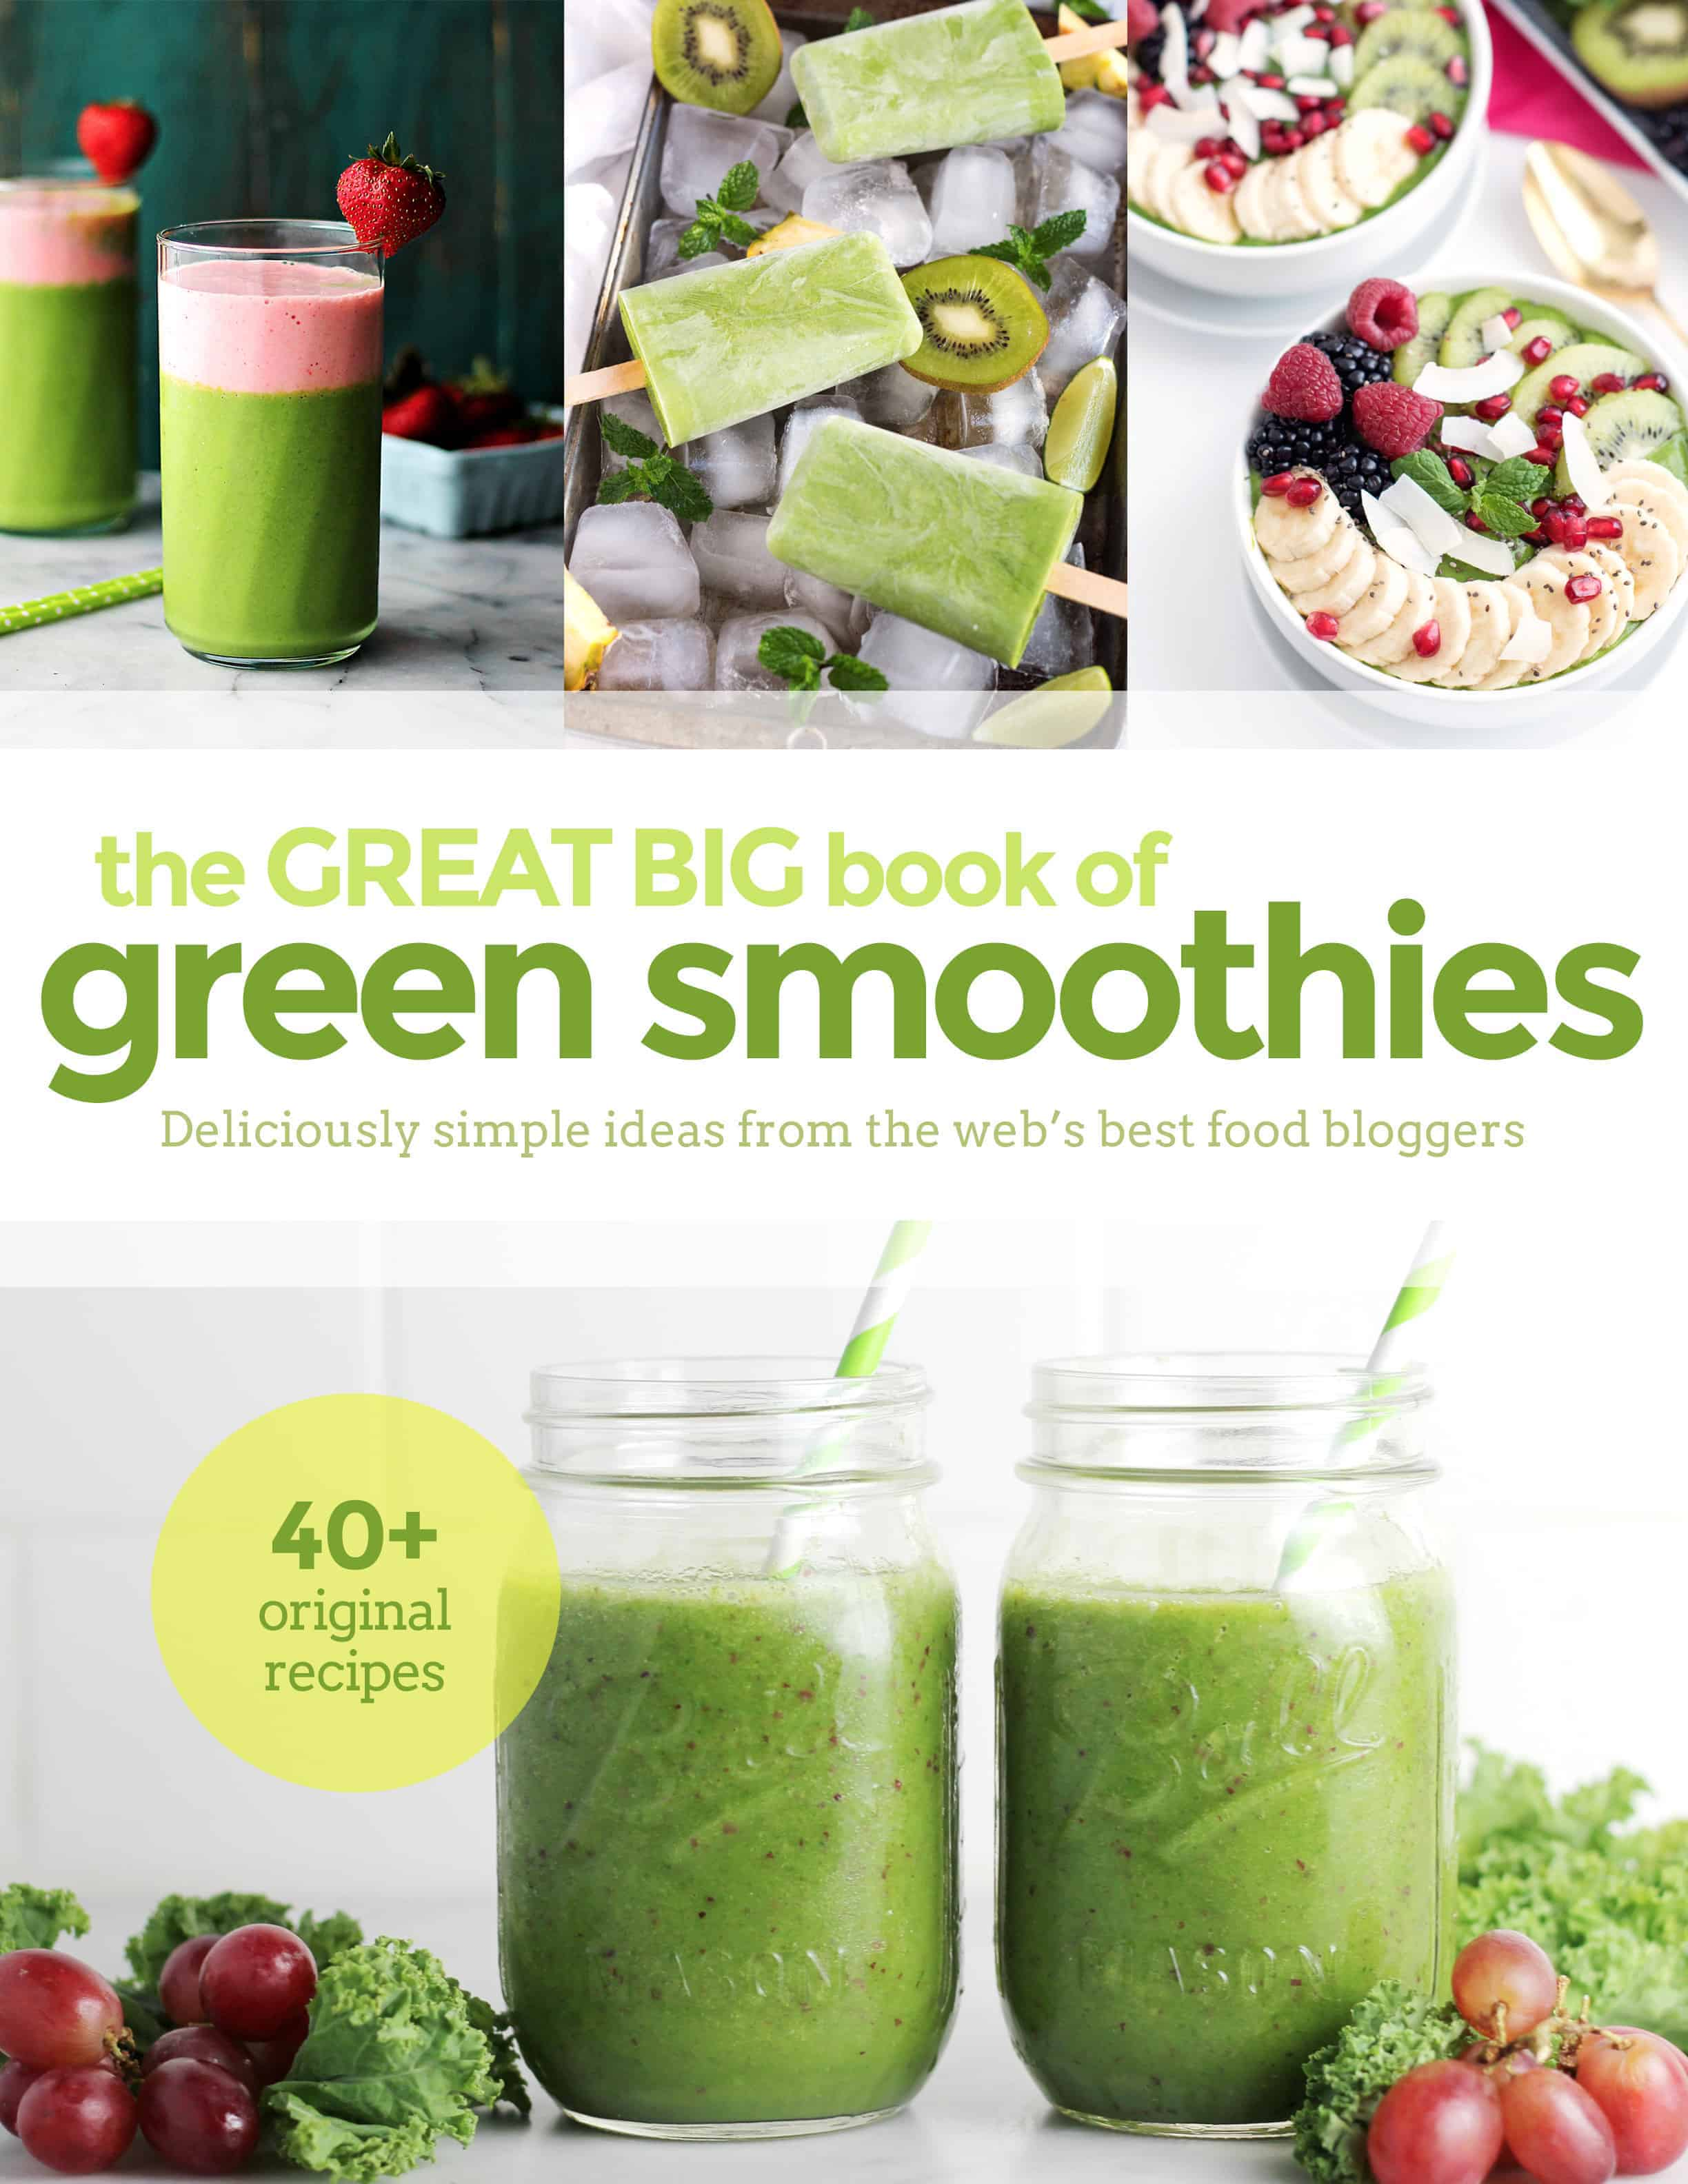 The Great Big Book of Green Smoothies with 45 green smoothie recipes by food bloggers on ilonaspassion.com I @ilonaspassion http://bit.ly/1n7xXhj